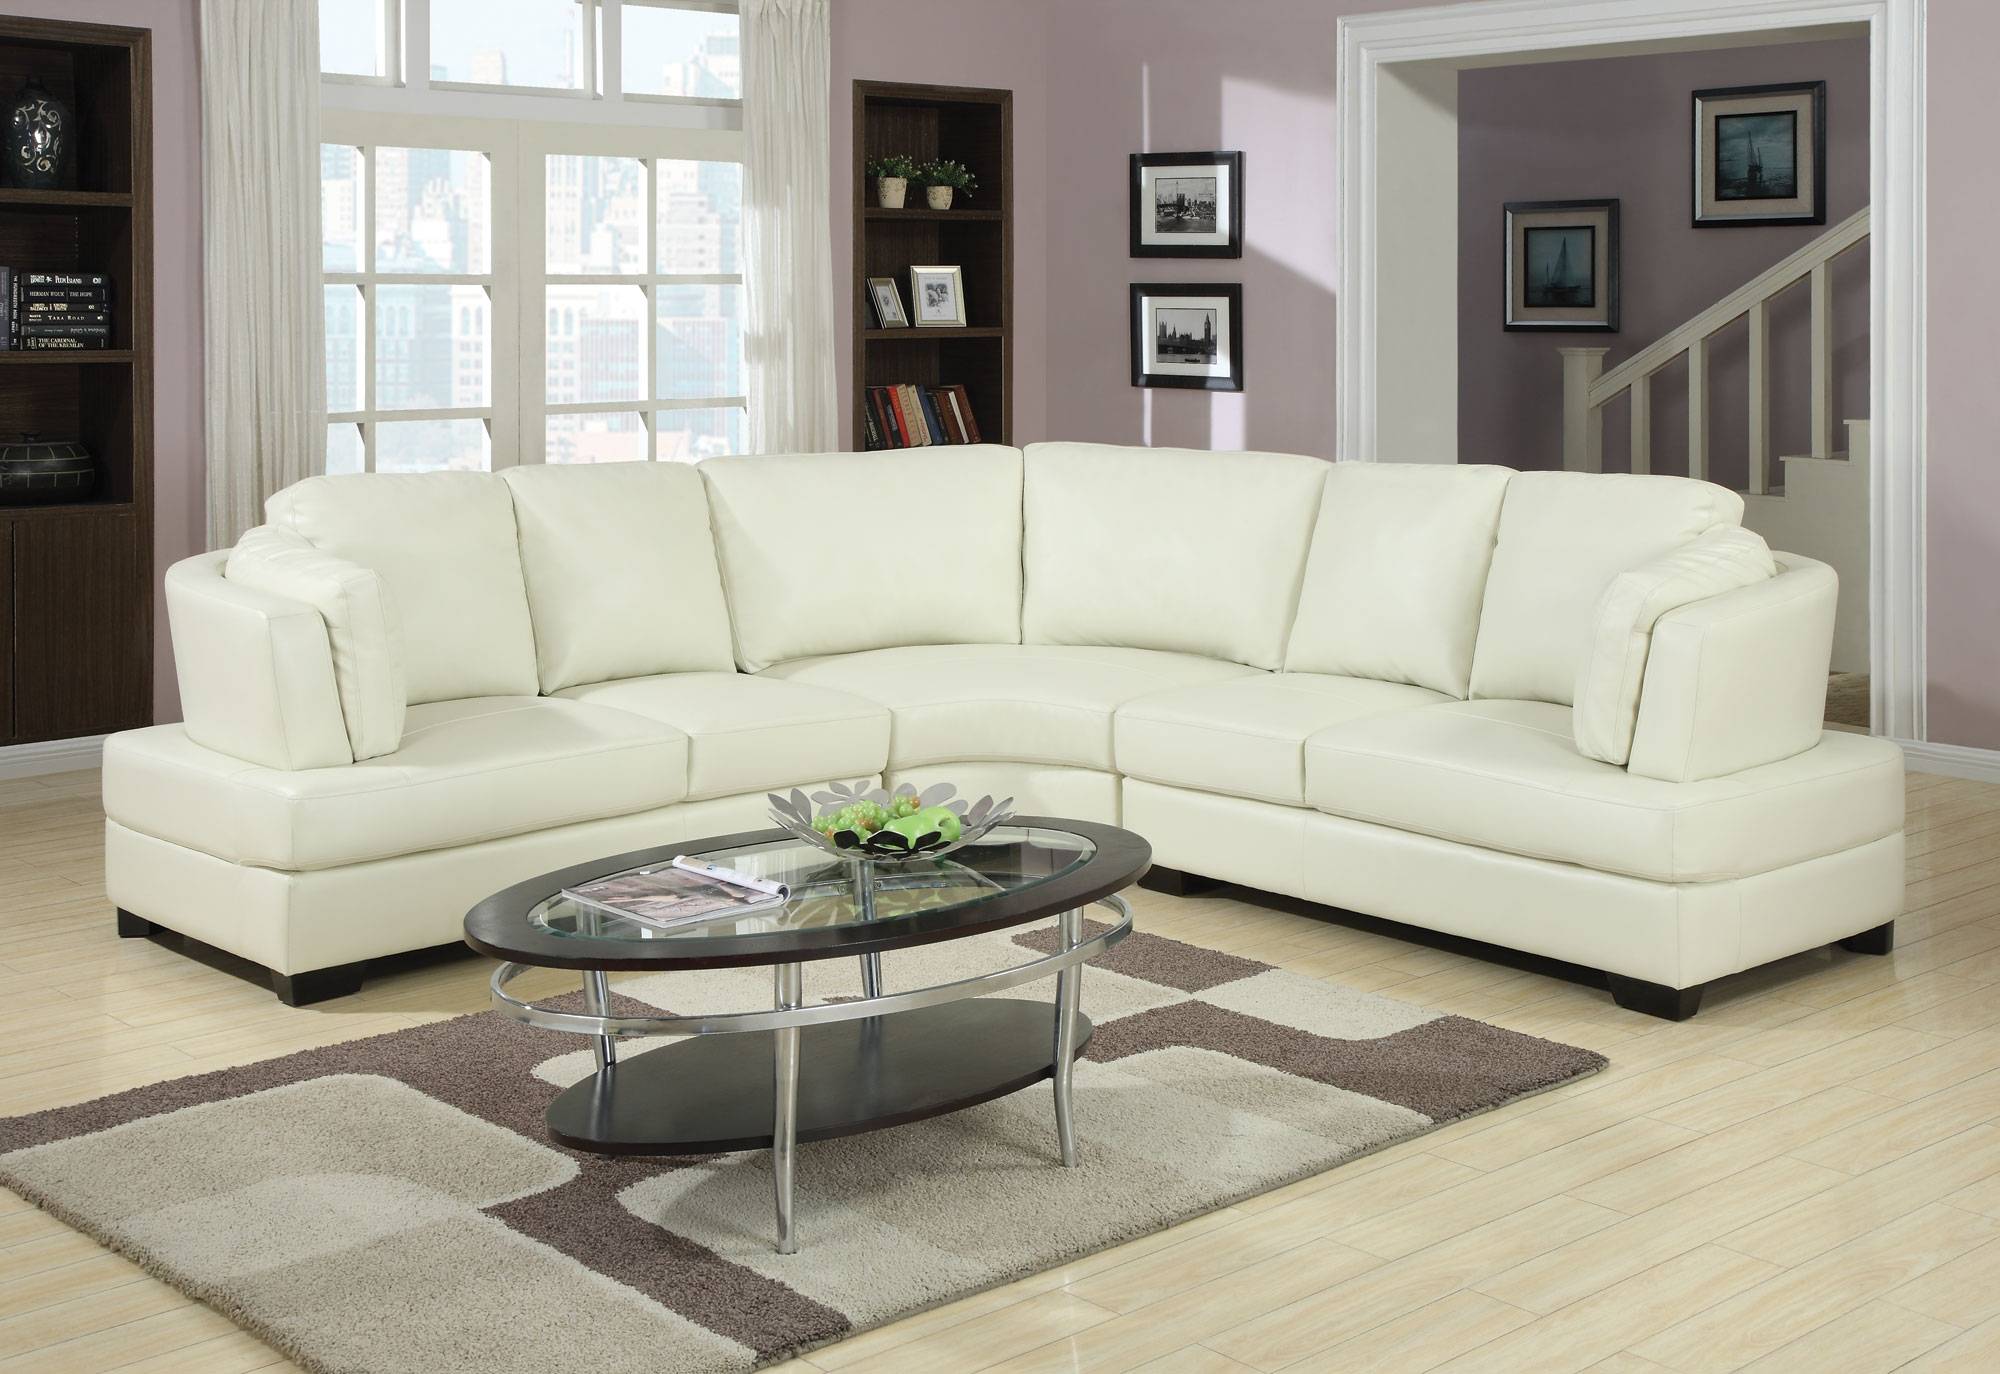 Curved Conversation Sectional Sofa Within Conversation Sofa Sectional (View 7 of 15)